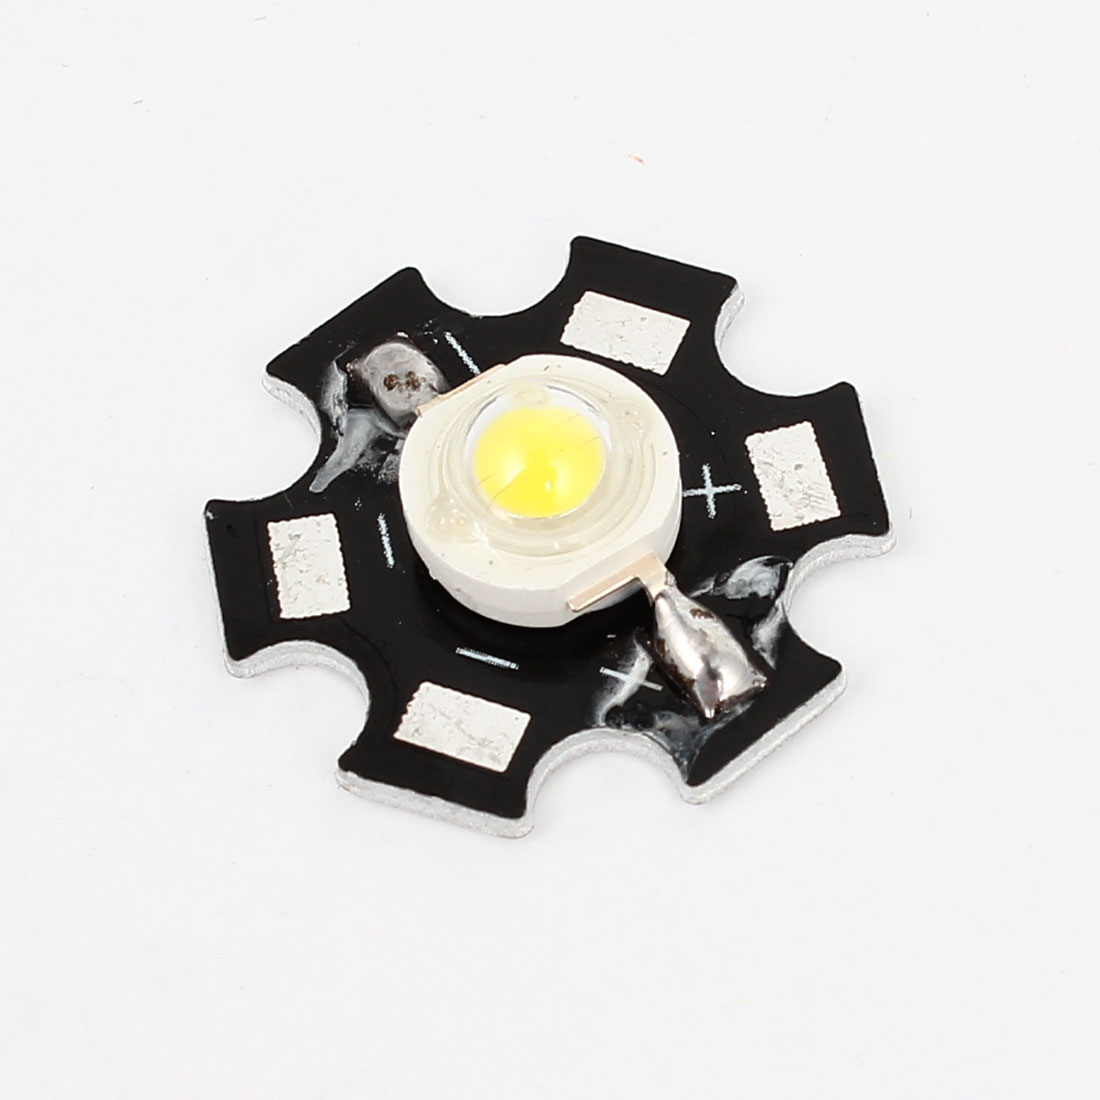 5Watt 290-300LM White LED Light Saving Energy Star Base Lamp Bead Emitter